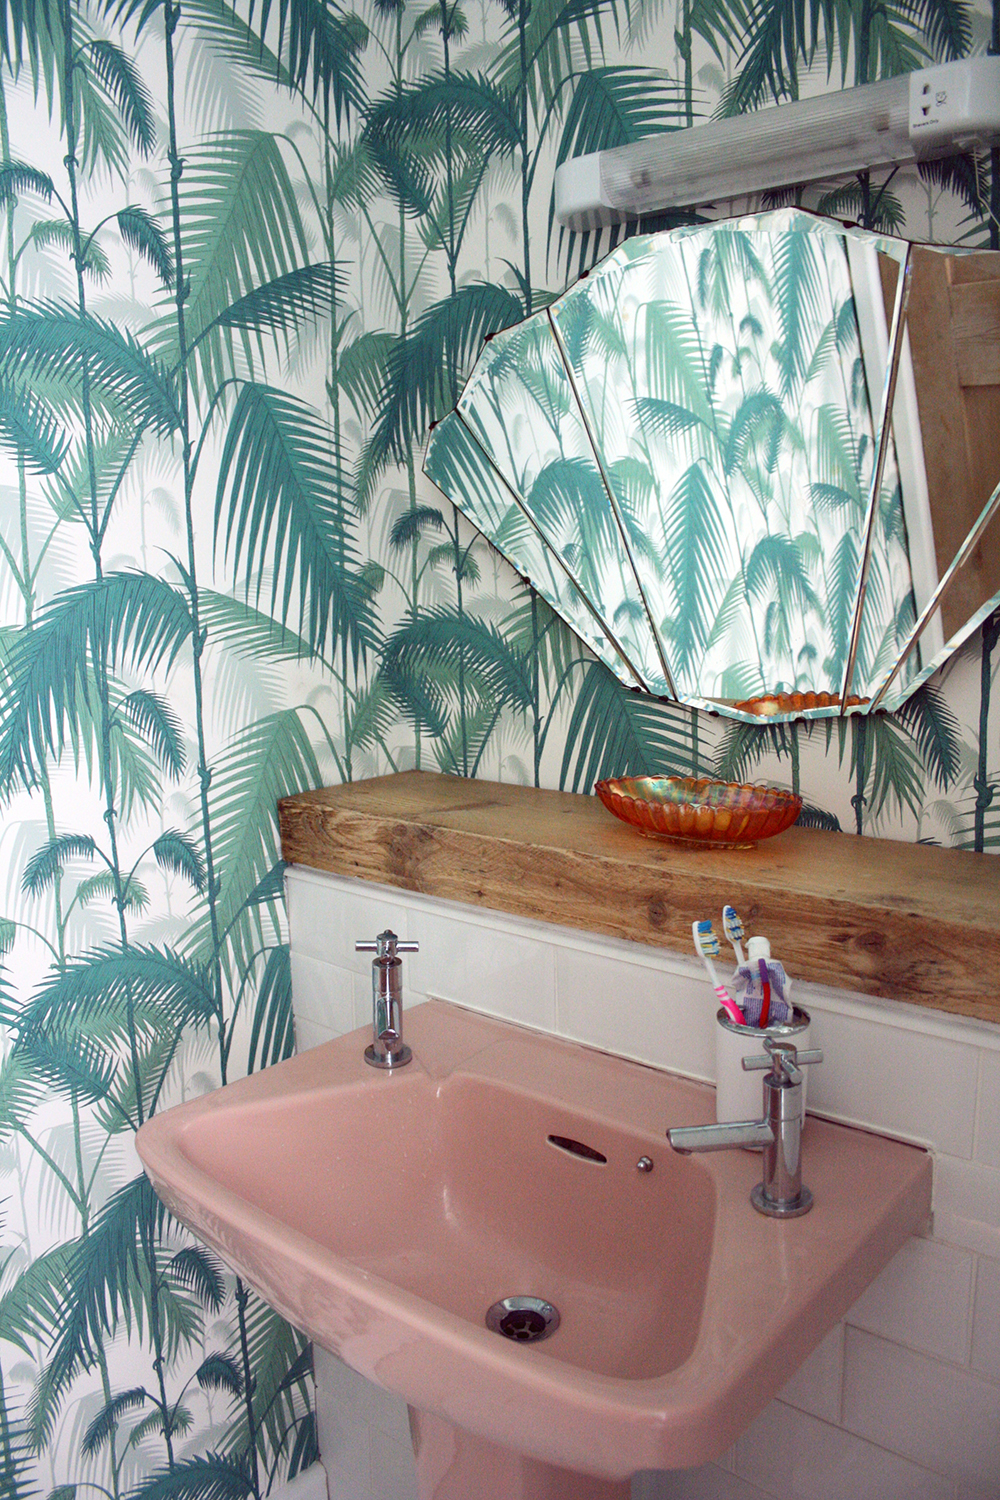 Pink bathroom suite - We Stayed A Little Contemporary With The Tiles And Chose White Beveled Subway Tiles For The Bath And Sink Area We Used A Piece Of Scaffolding Left Over